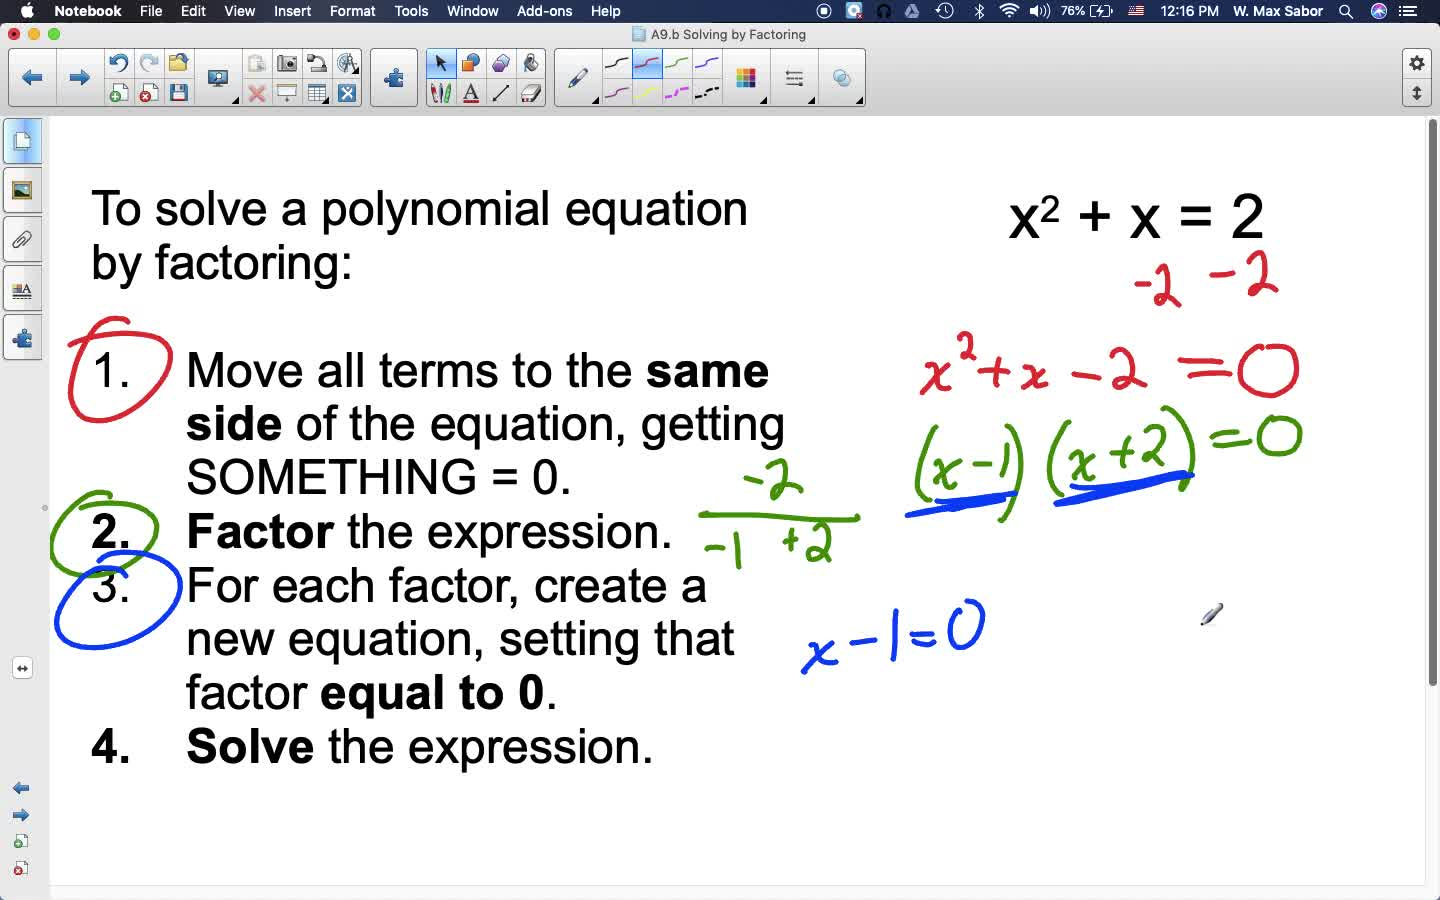 A9.b Solving by Factoring